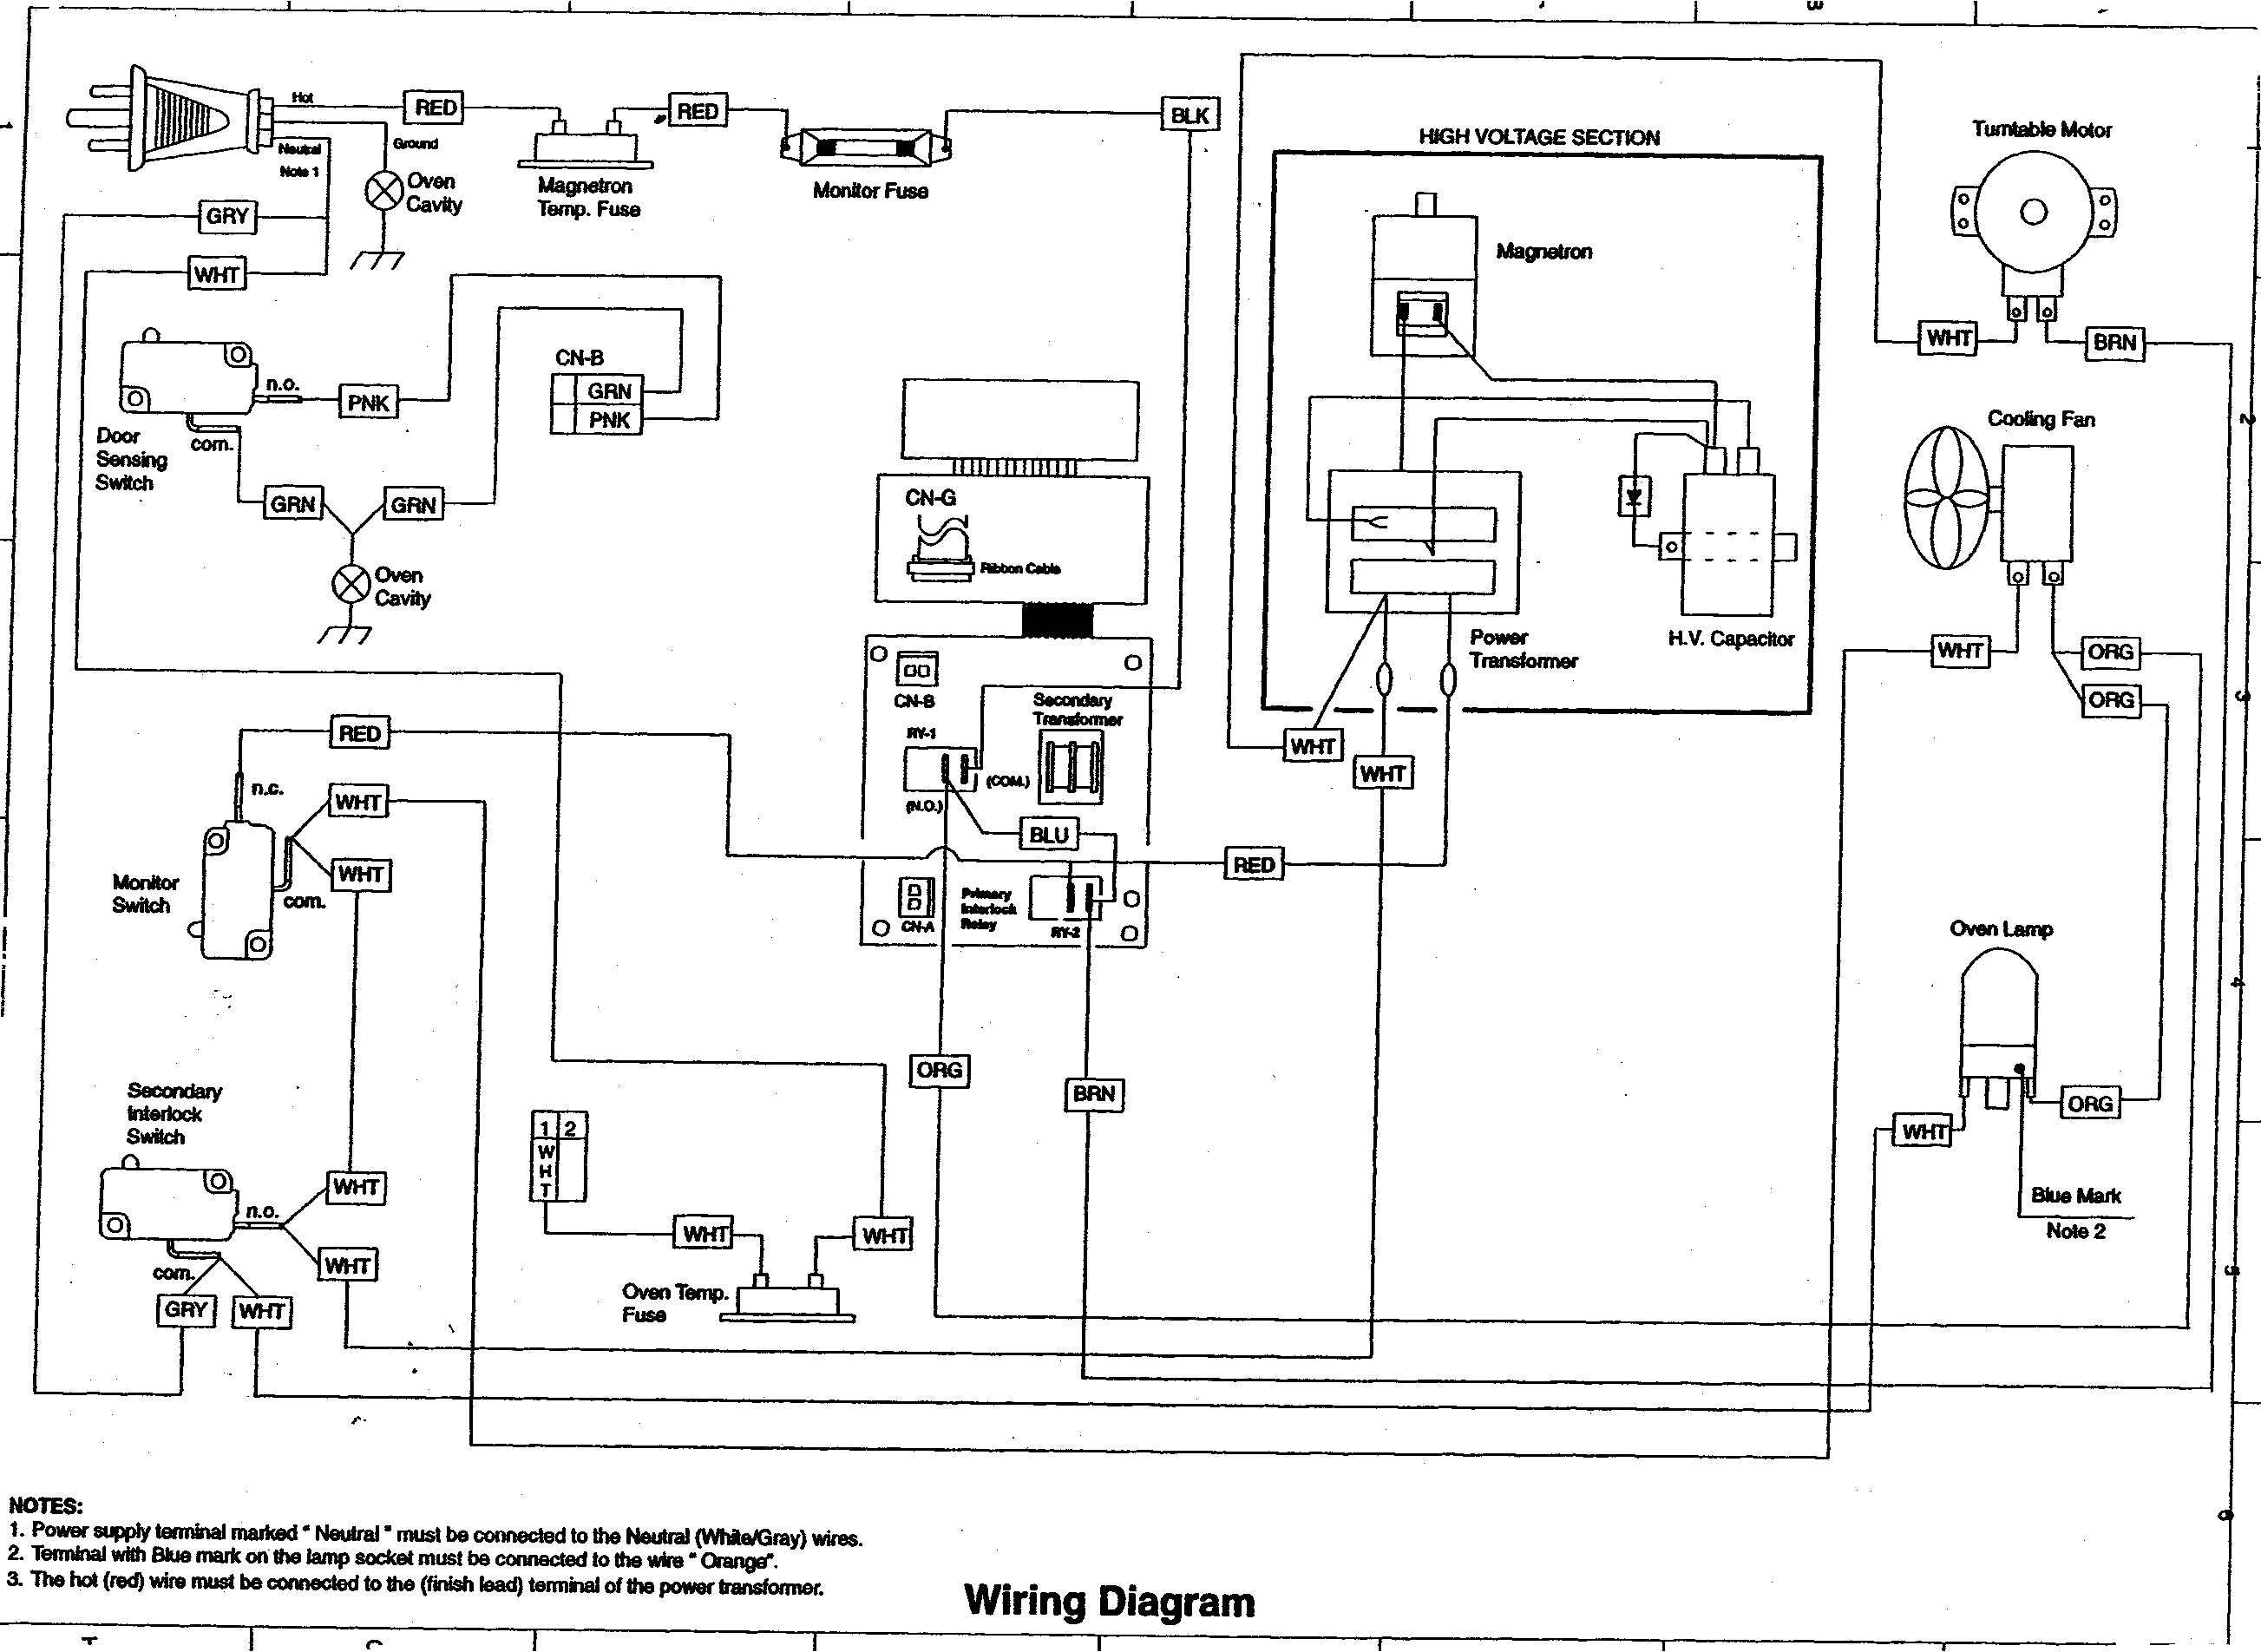 Emerson Microwave Wiring Diagram Data Wiring Diagrams